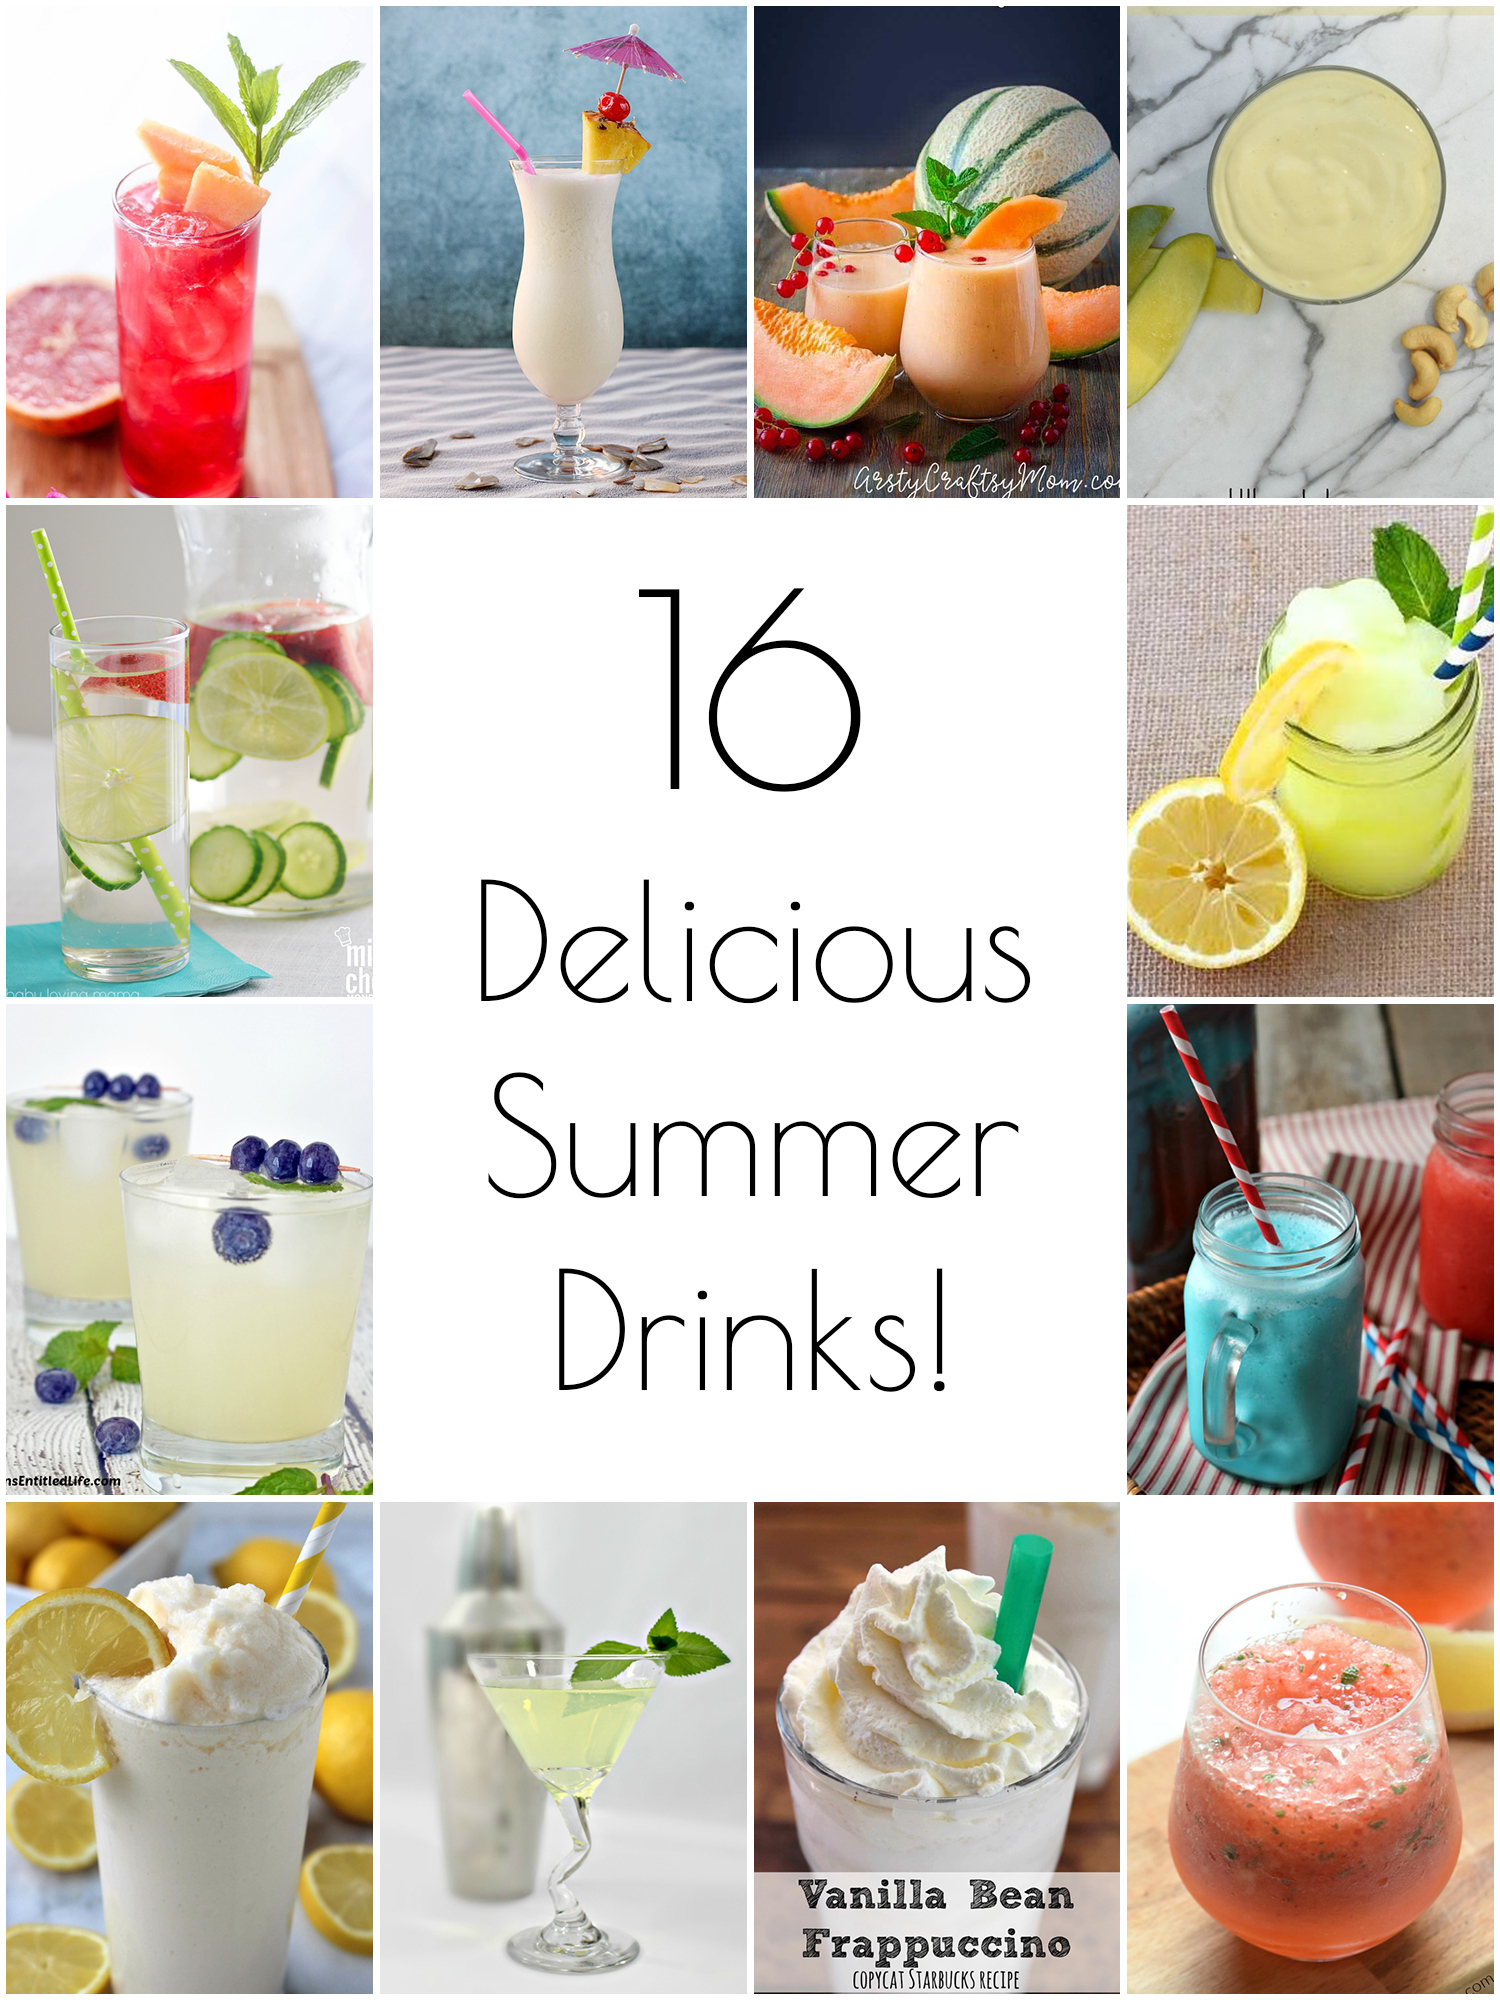 16 Delicious Summer Drink Recipes